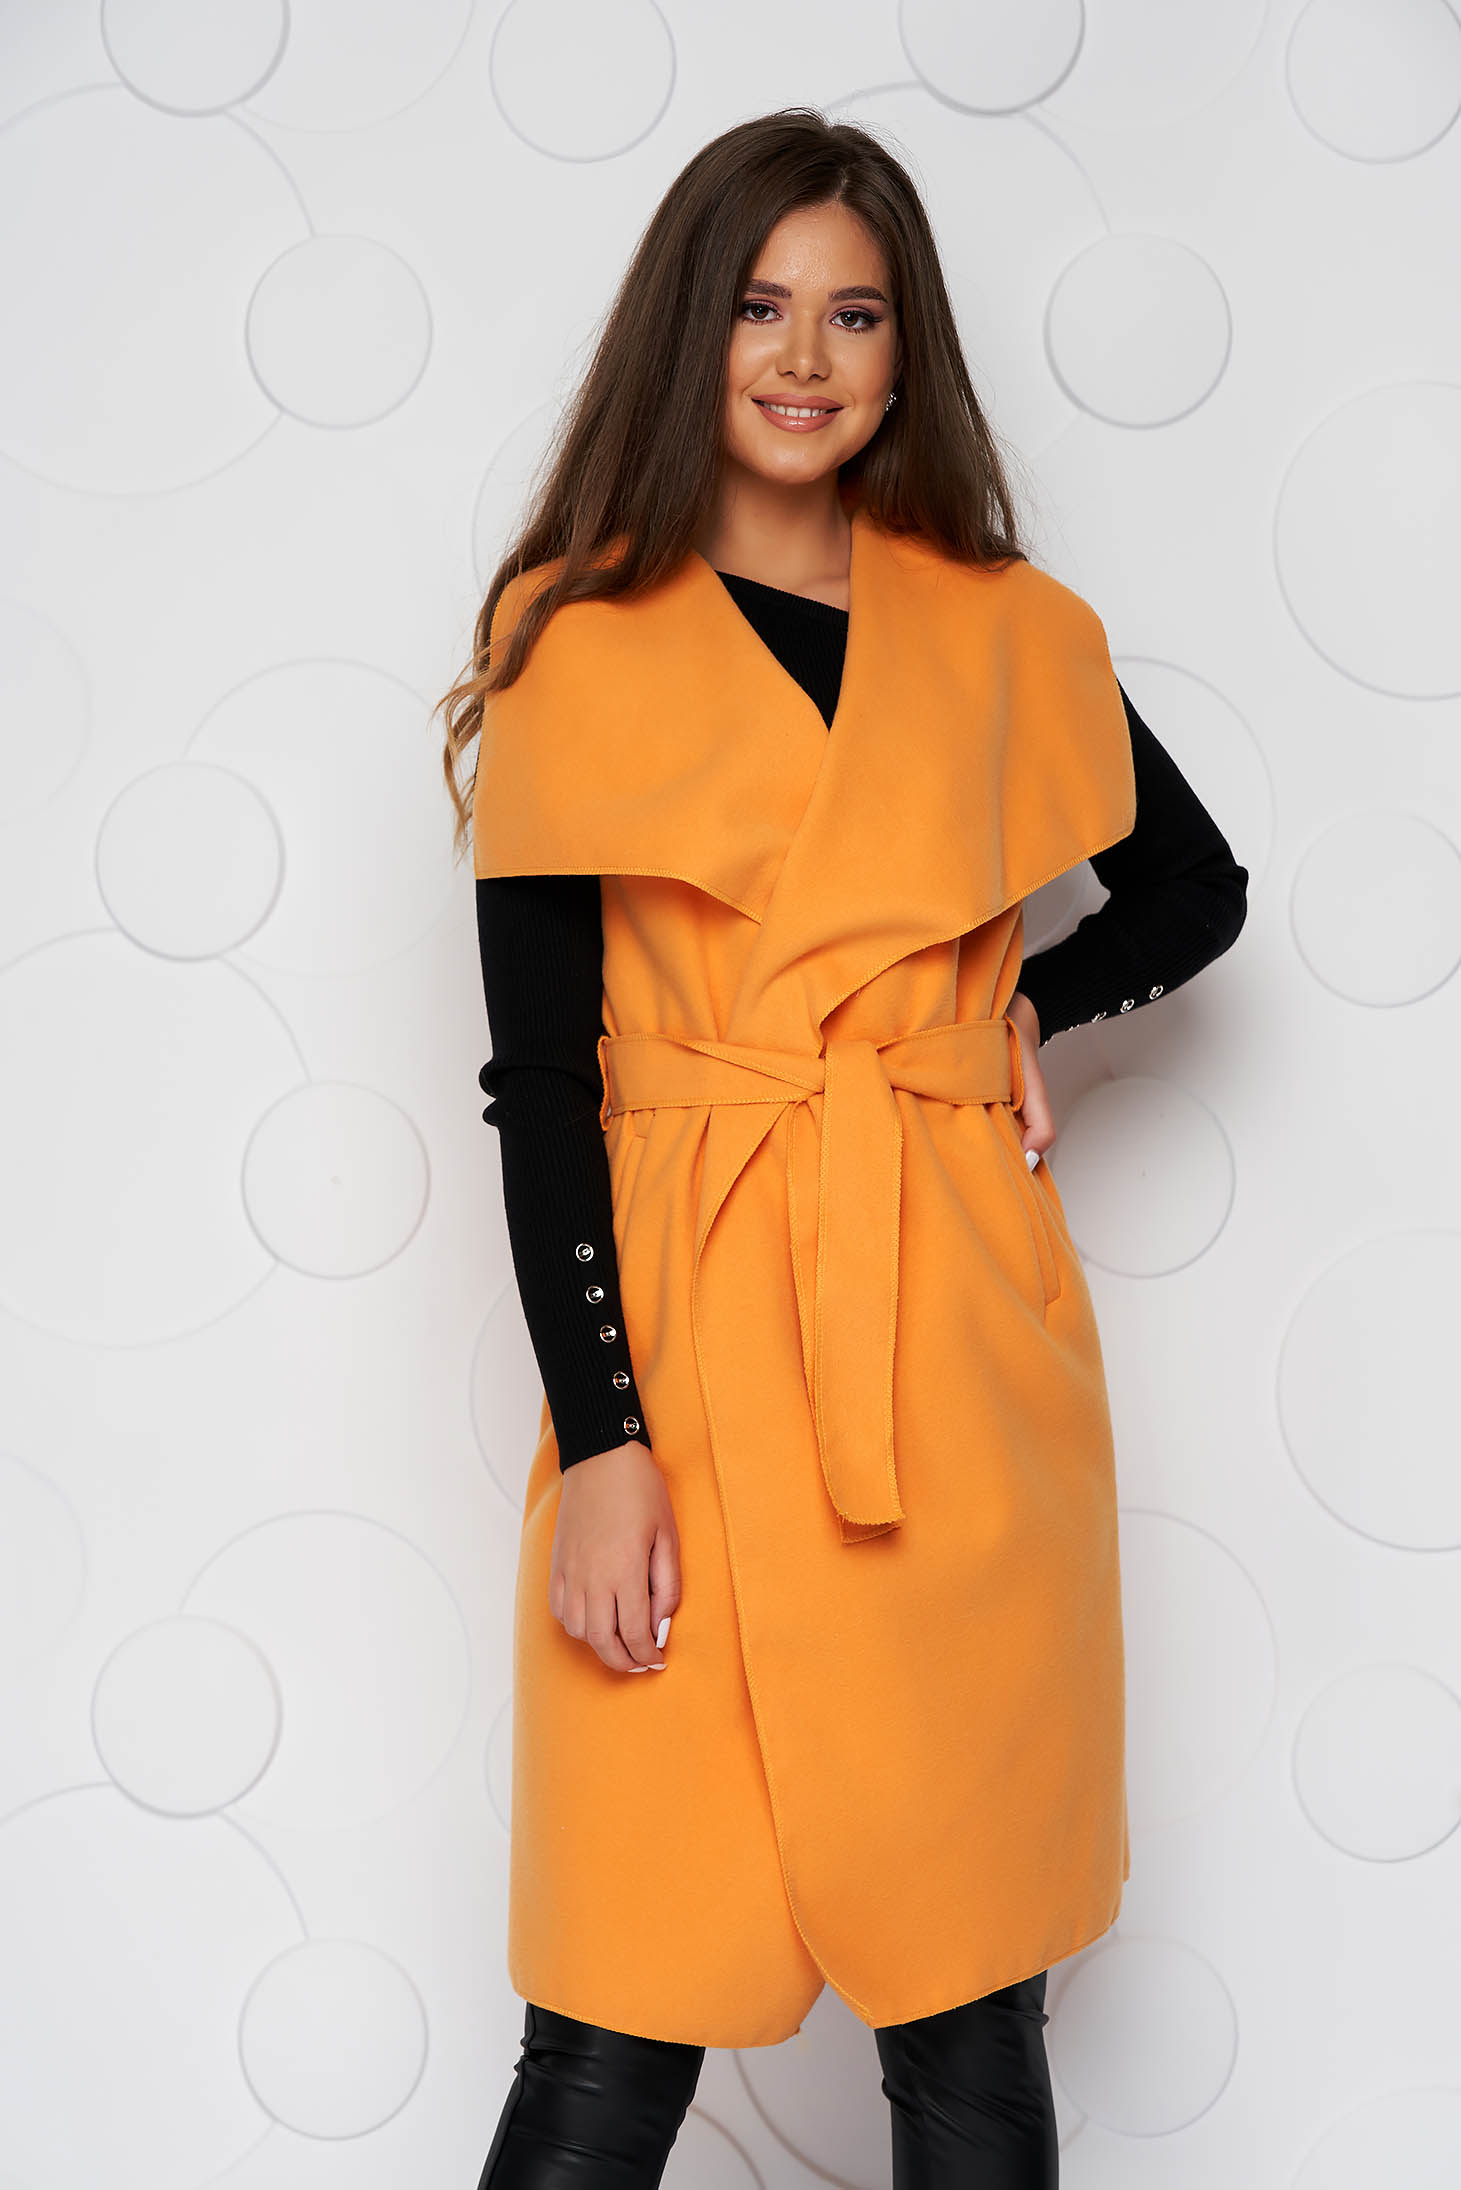 Orange gilet thick fabric casual with pockets detachable cord soft fabric